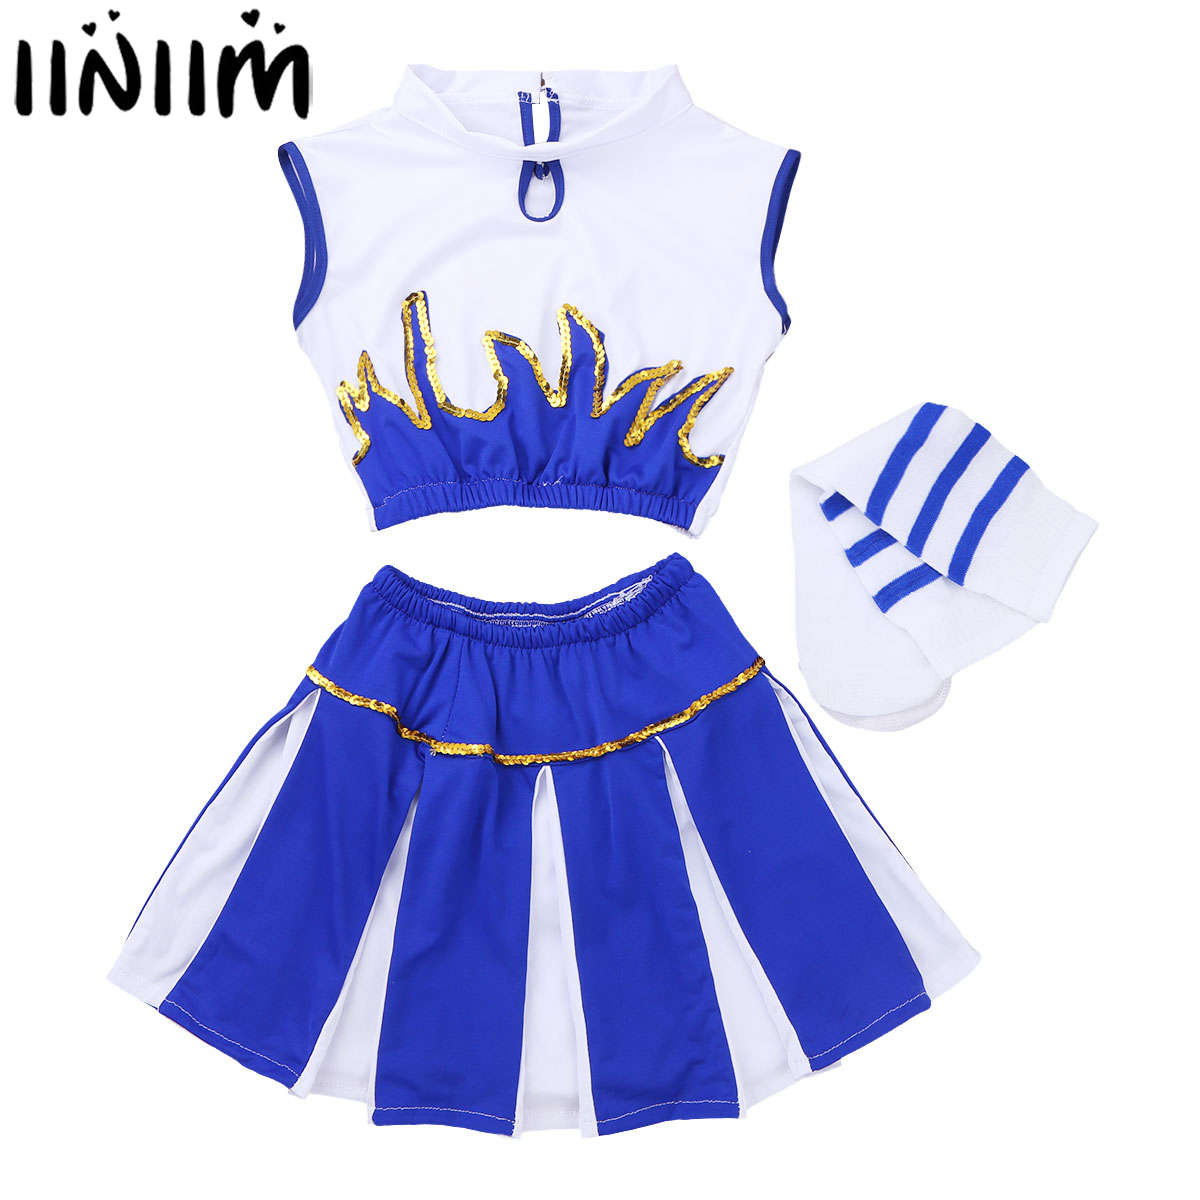 Kids Girls Cheerleader Fancy Costume Ballerina Crop Top with Skirt and Socks for Cosplay Party Ballroom Jazz Leotard Dancewear